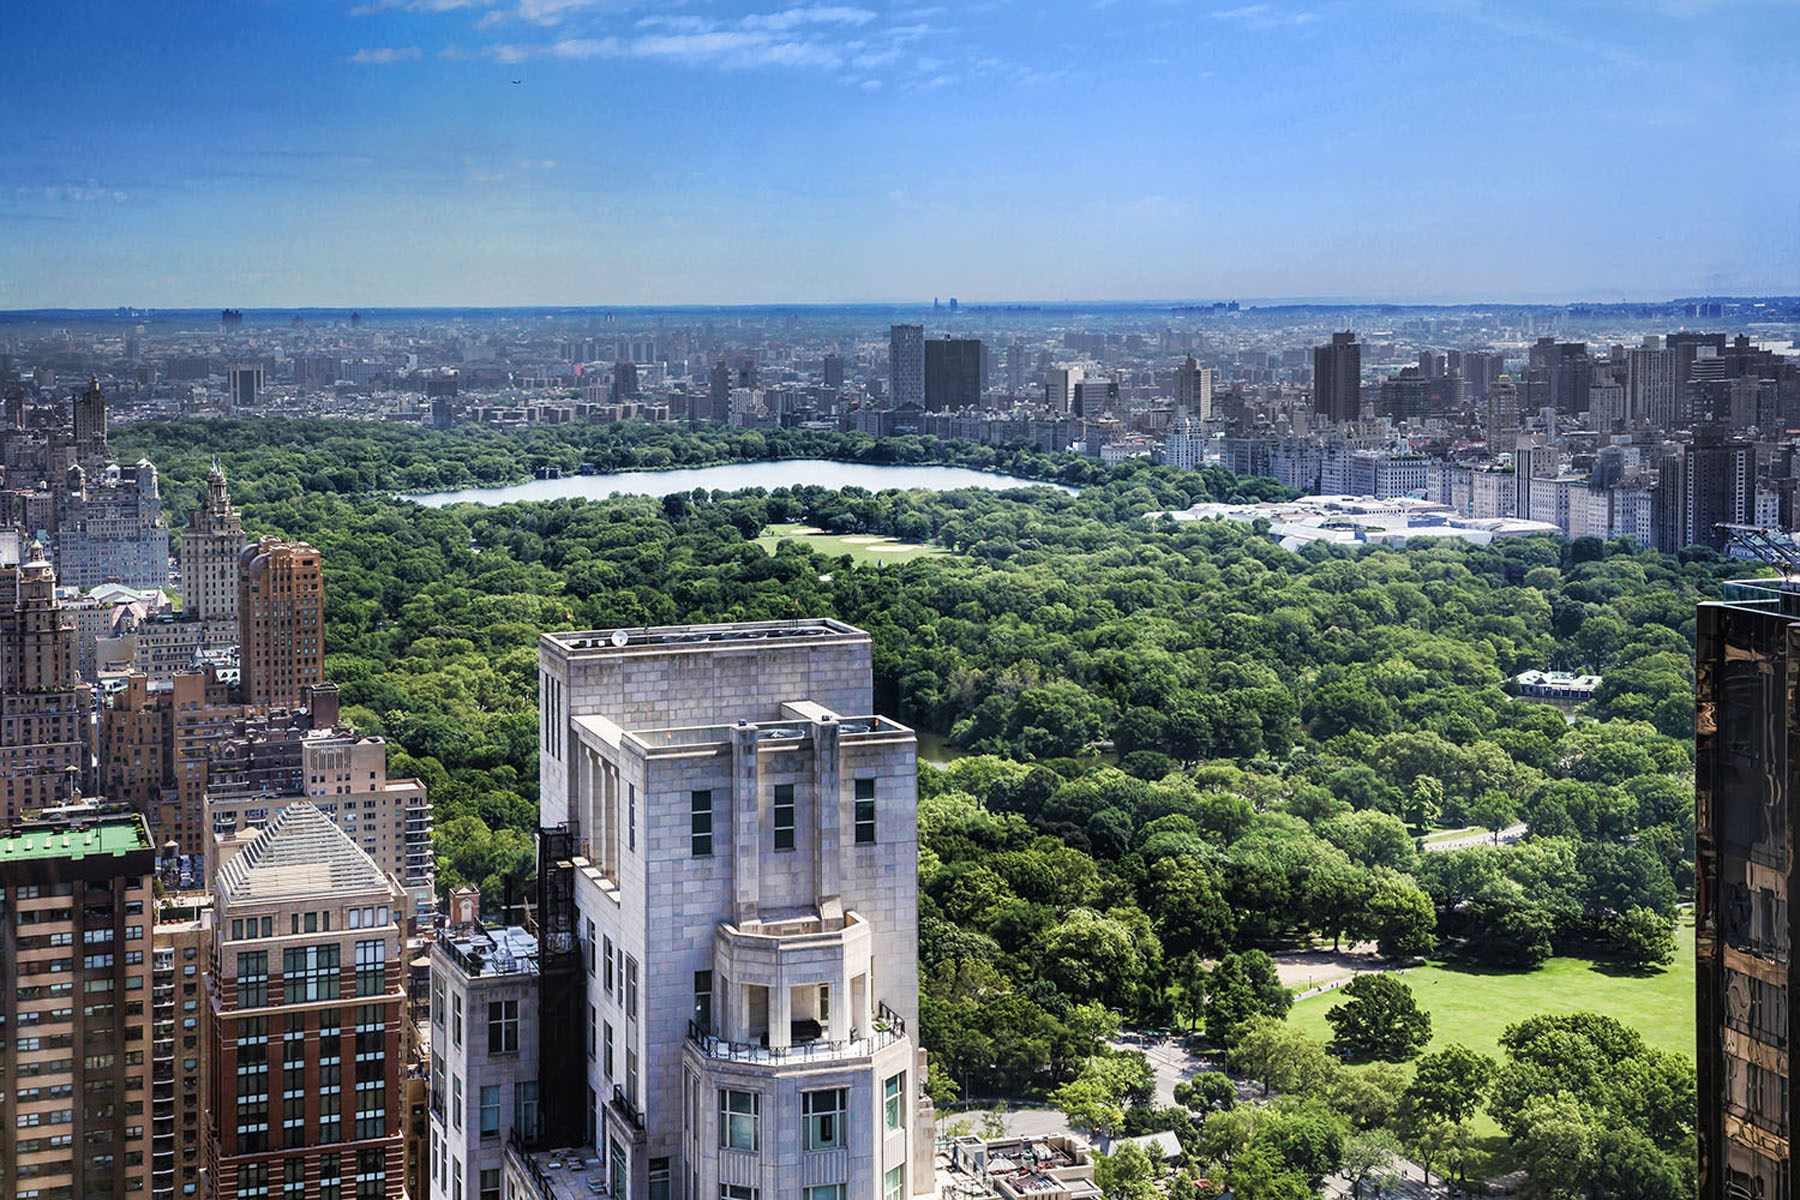 Кондоминиум для того Продажа на The Residences Mandarin Oriental 75C/75E 80 Columbus Circle Apt 75C/75E Upper West Side, New York, Нью-Йорк, 10023 Соединенные Штаты